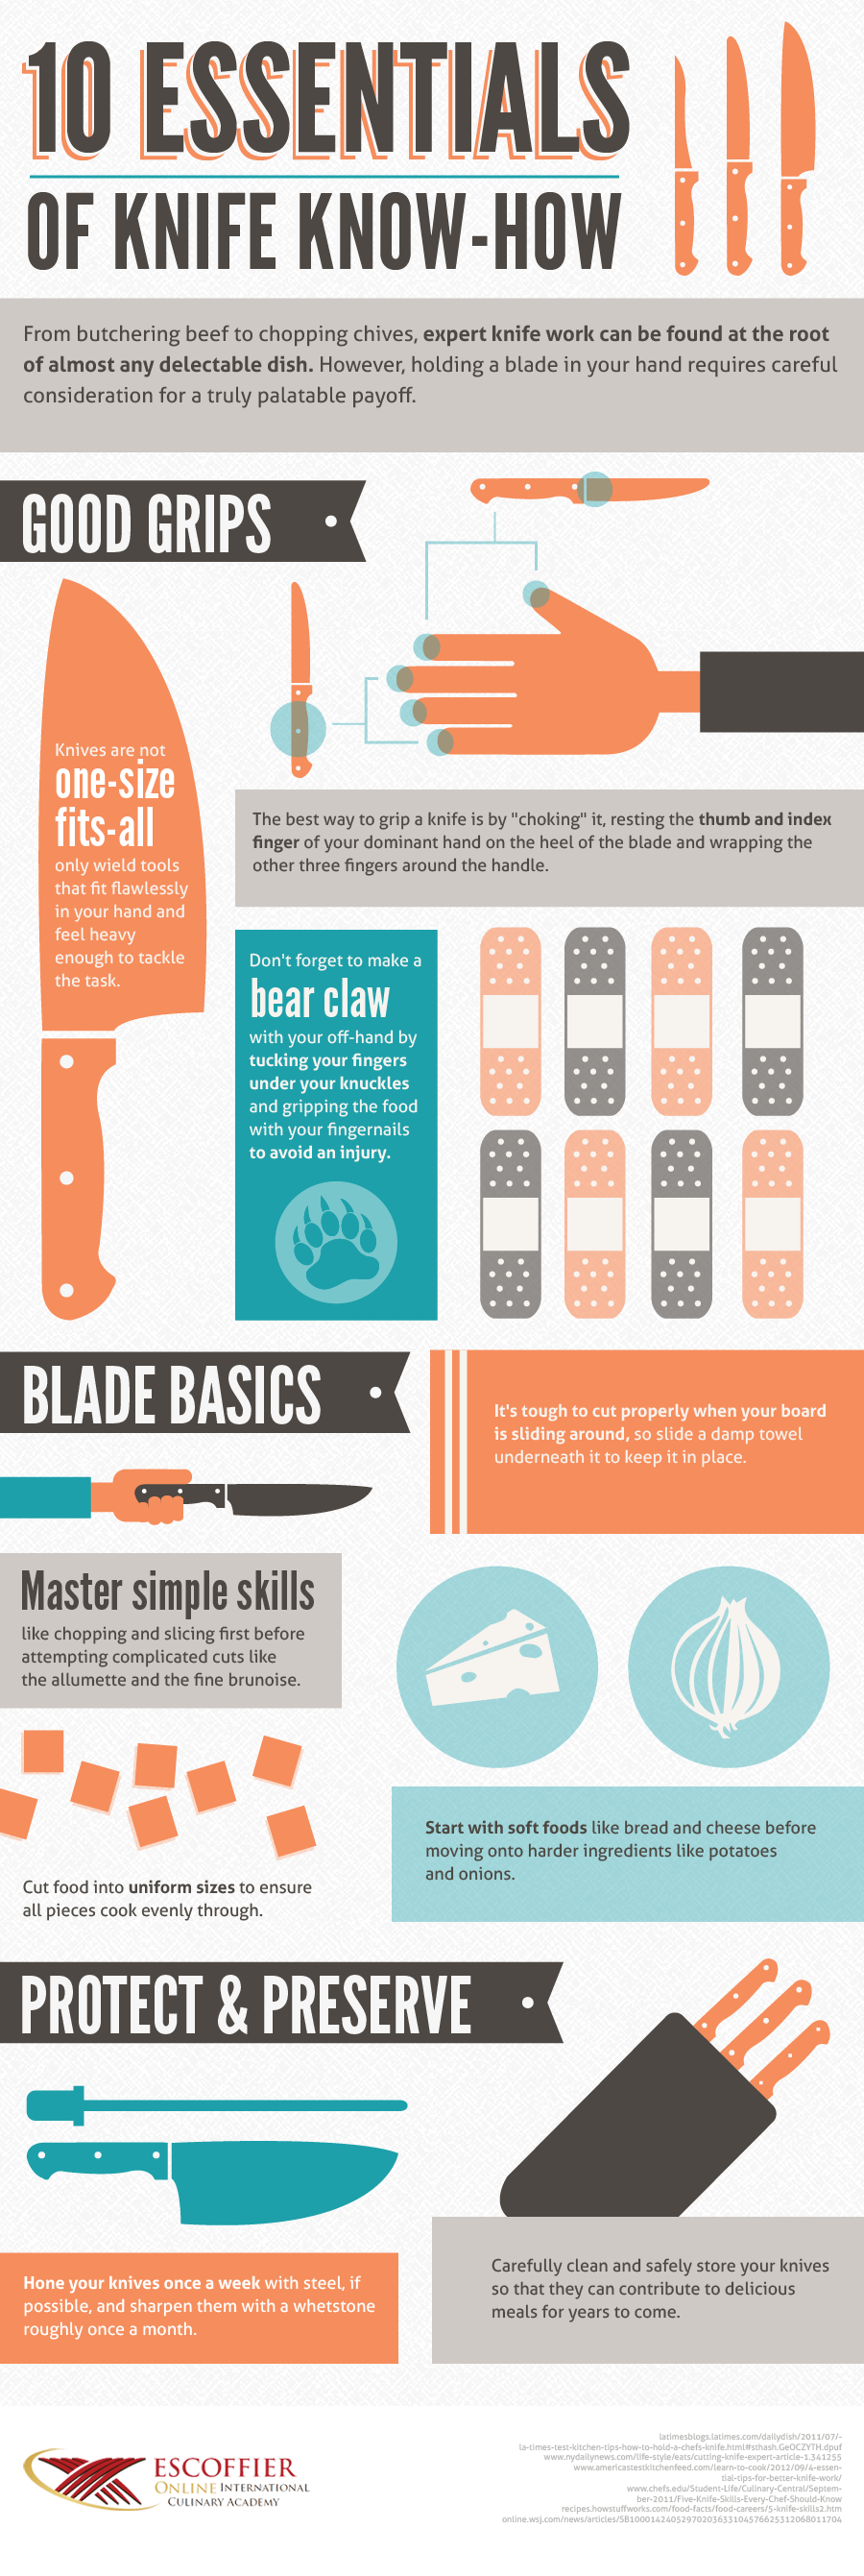 Safety Tips For Using Knives In The Kitchen Escoffier